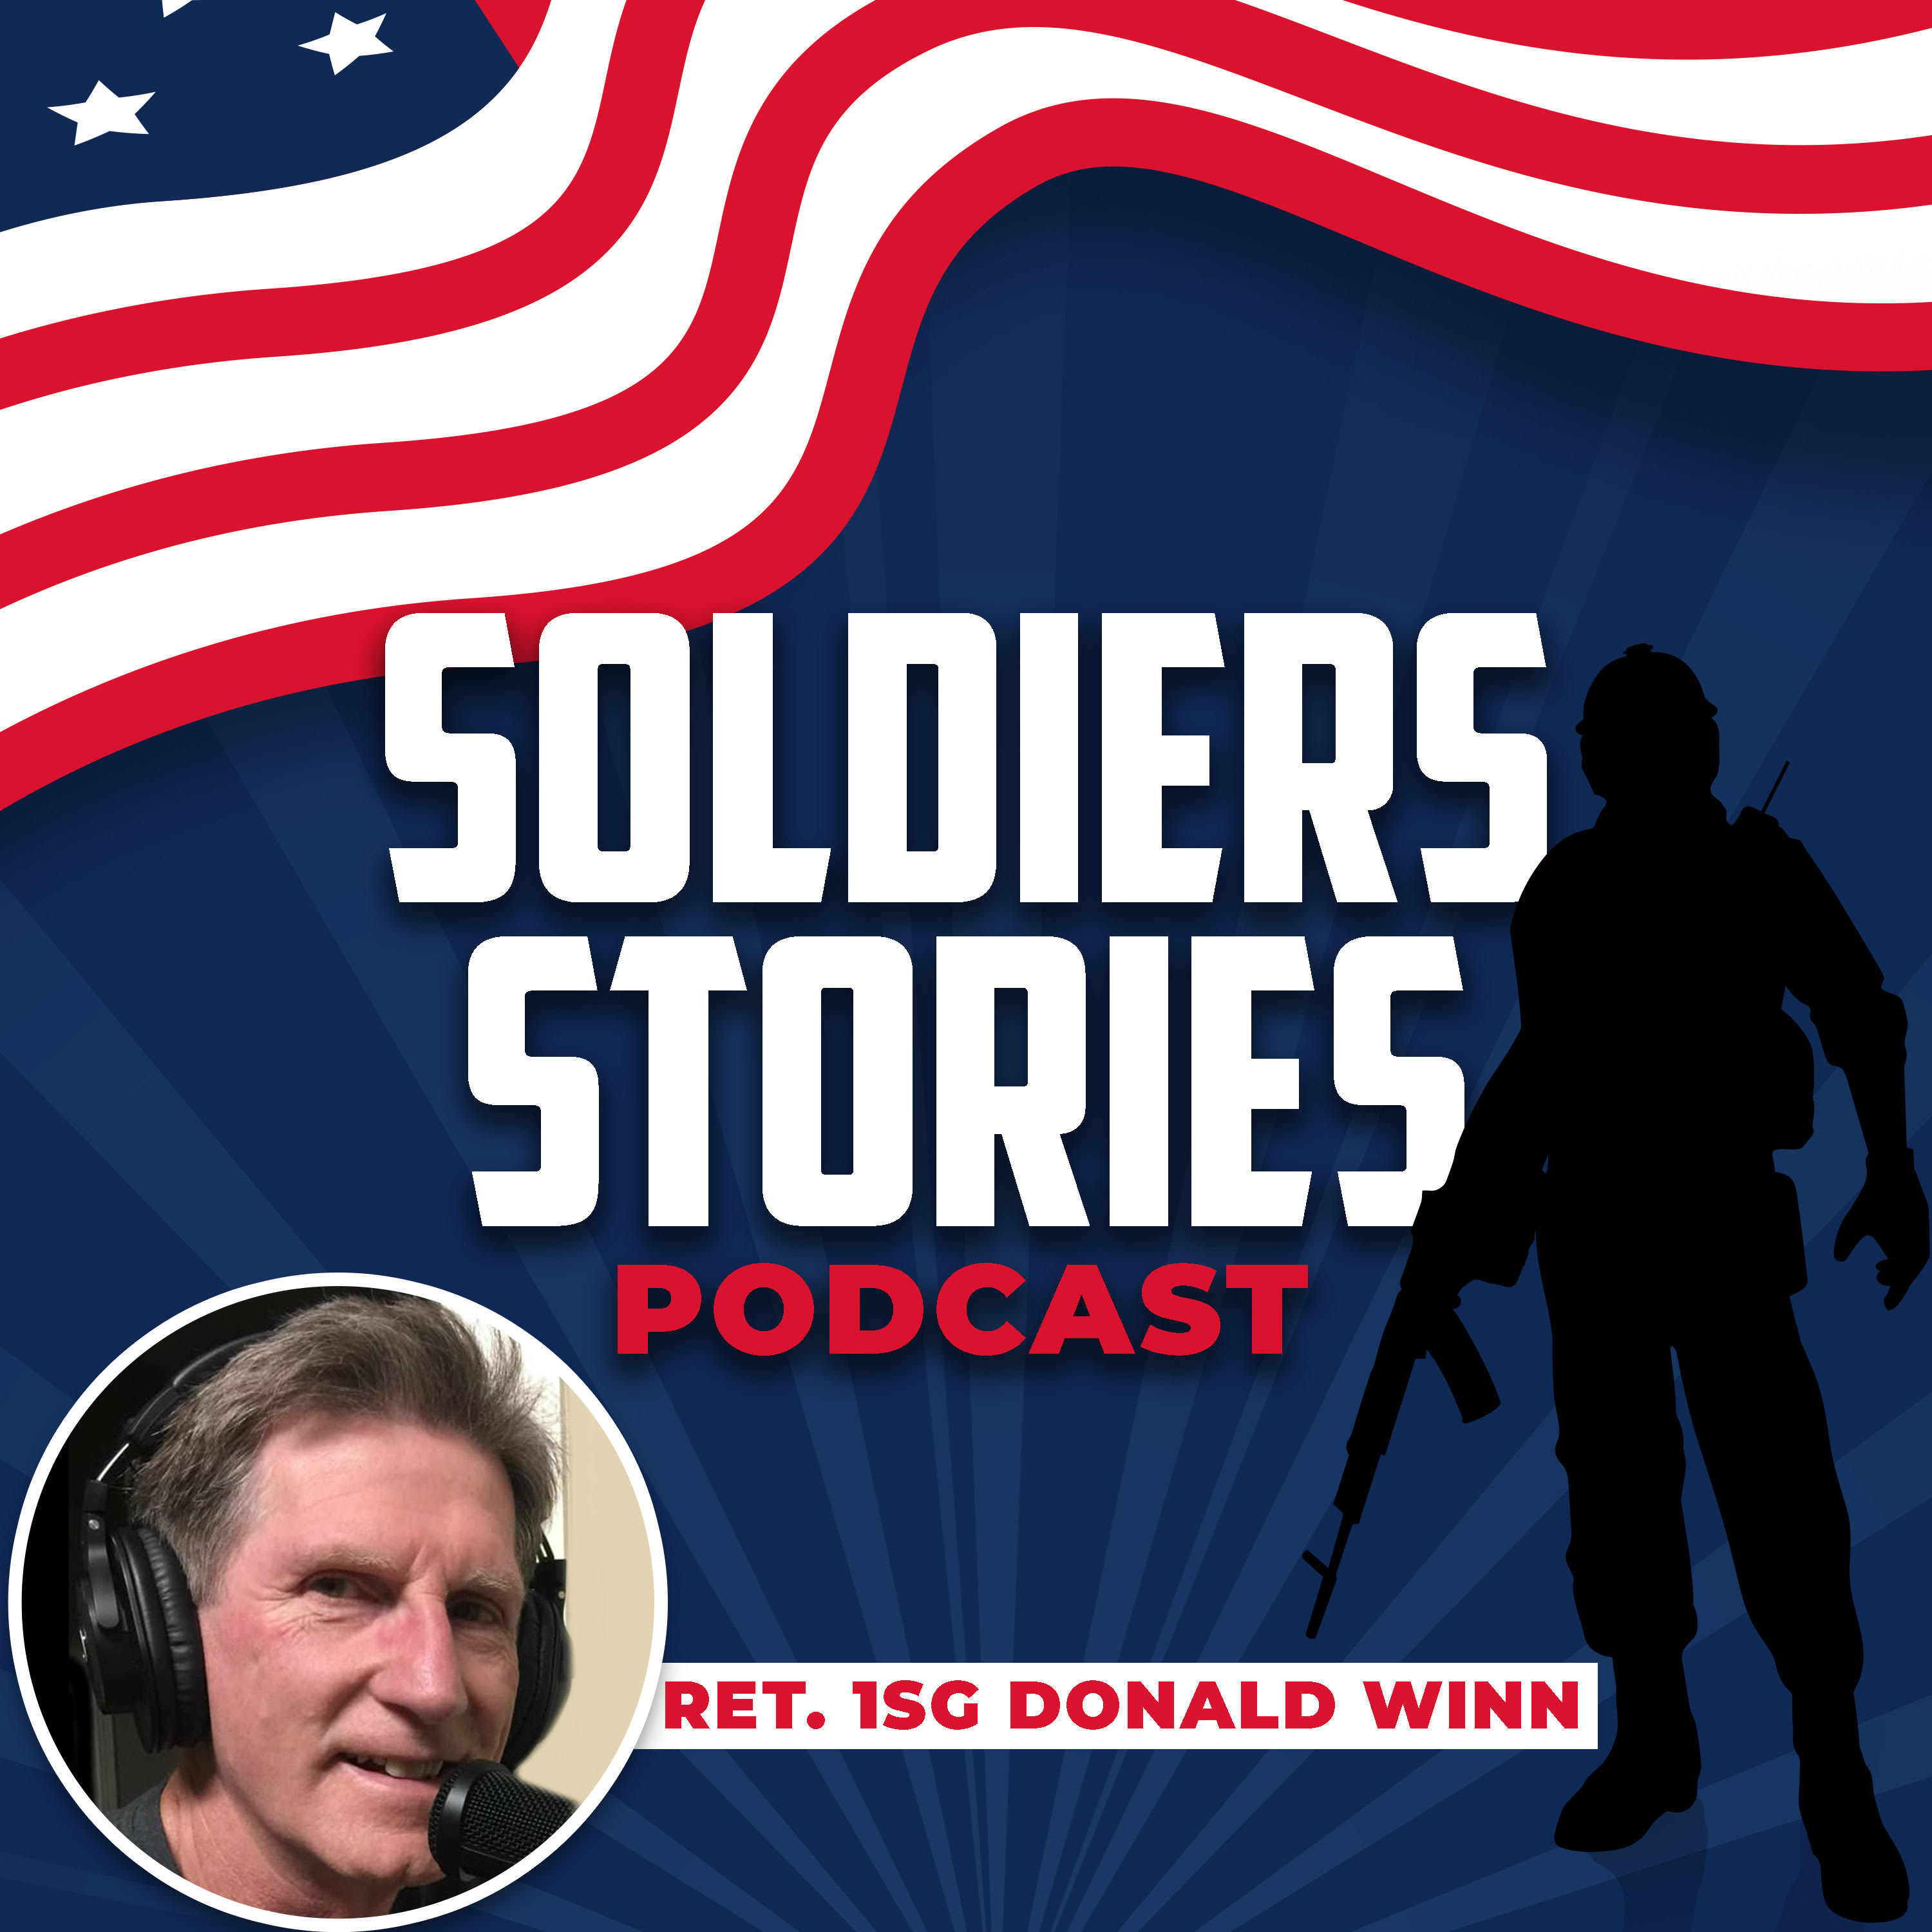 Soldiers Stories Podcast show art